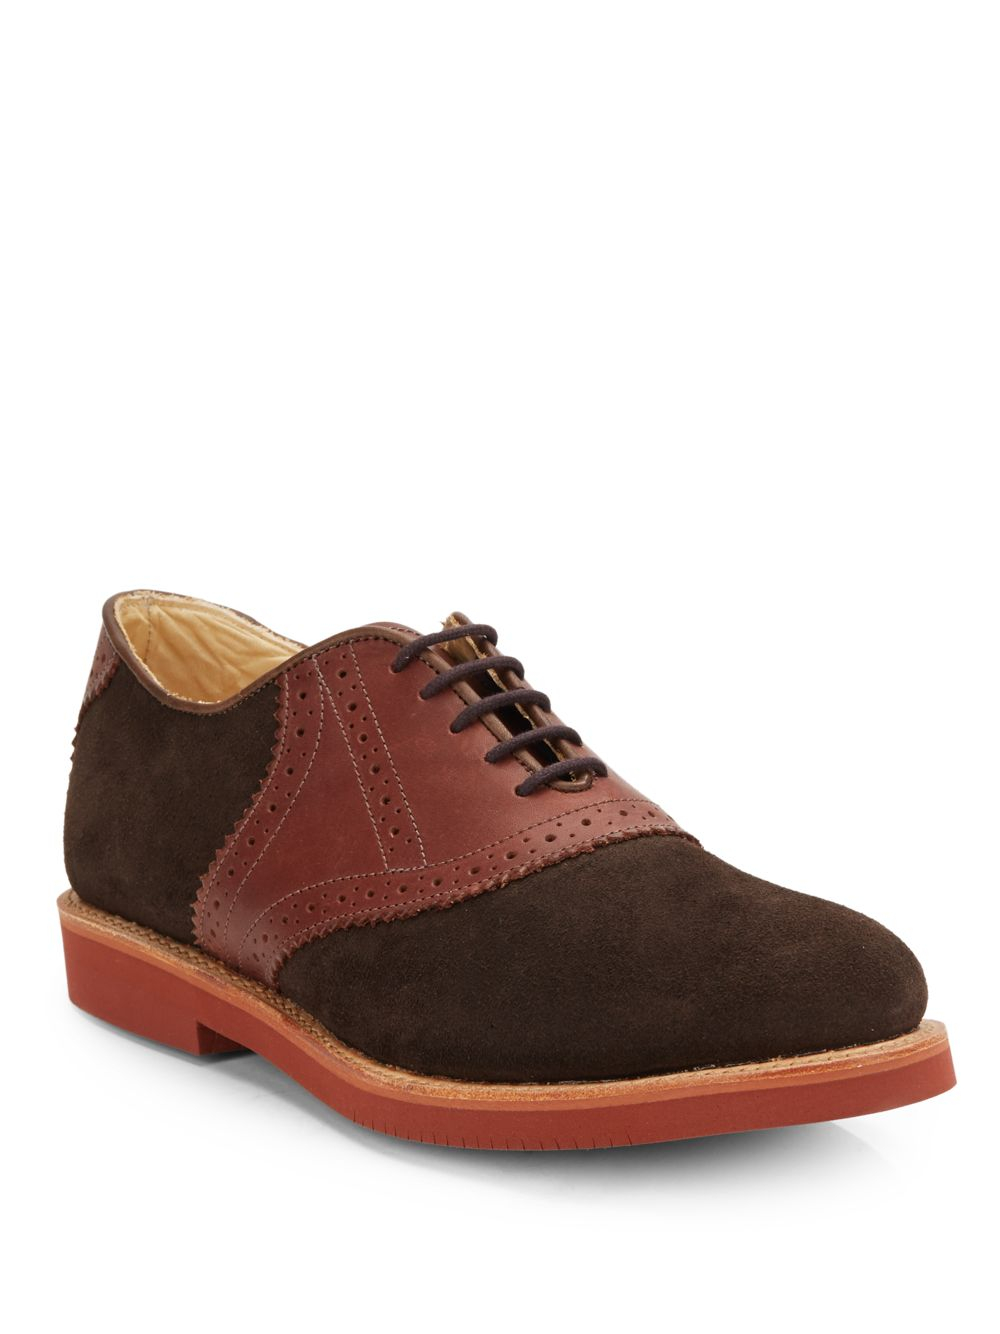 walk suede leather saddle oxford shoes in brown for